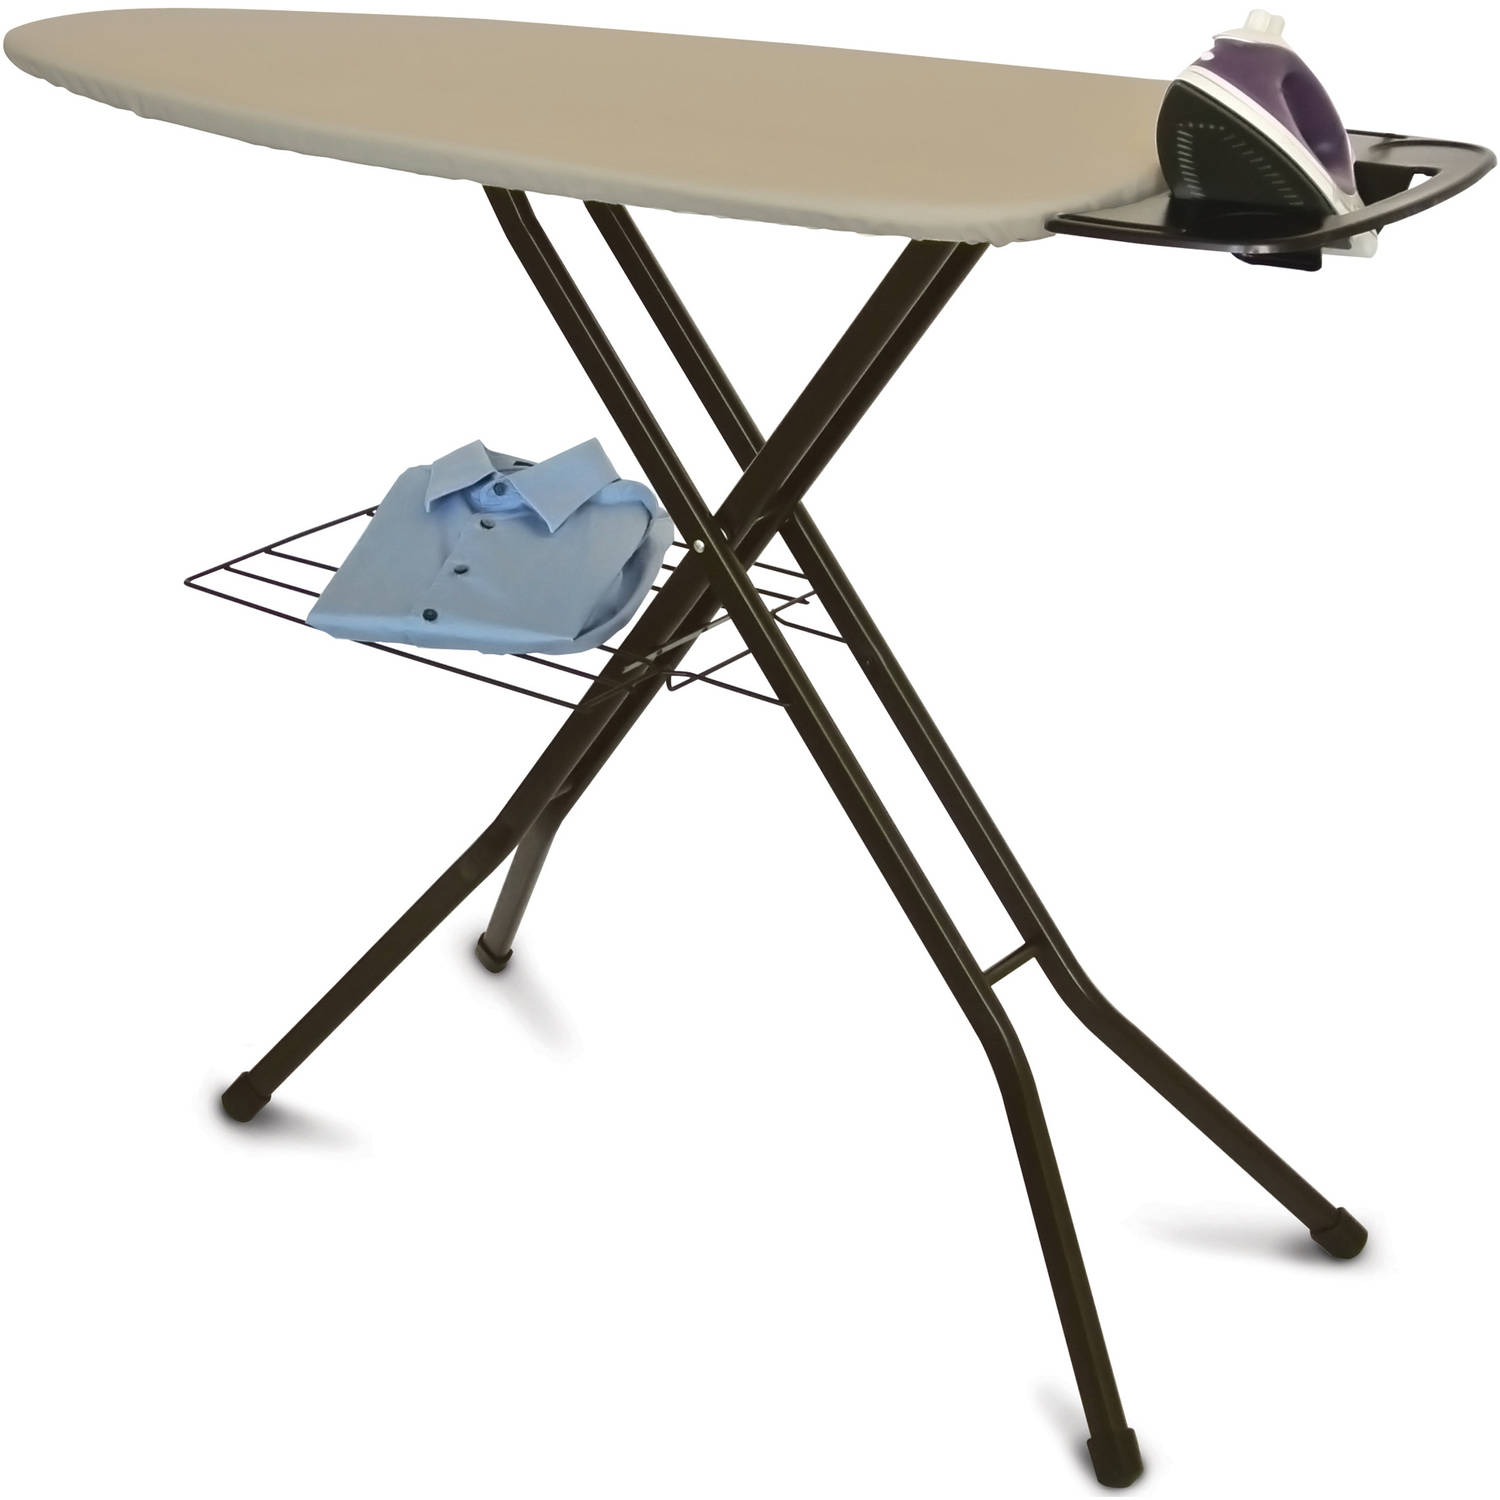 Better Homes and Gardens Wide Top Ironing Board, Khaki